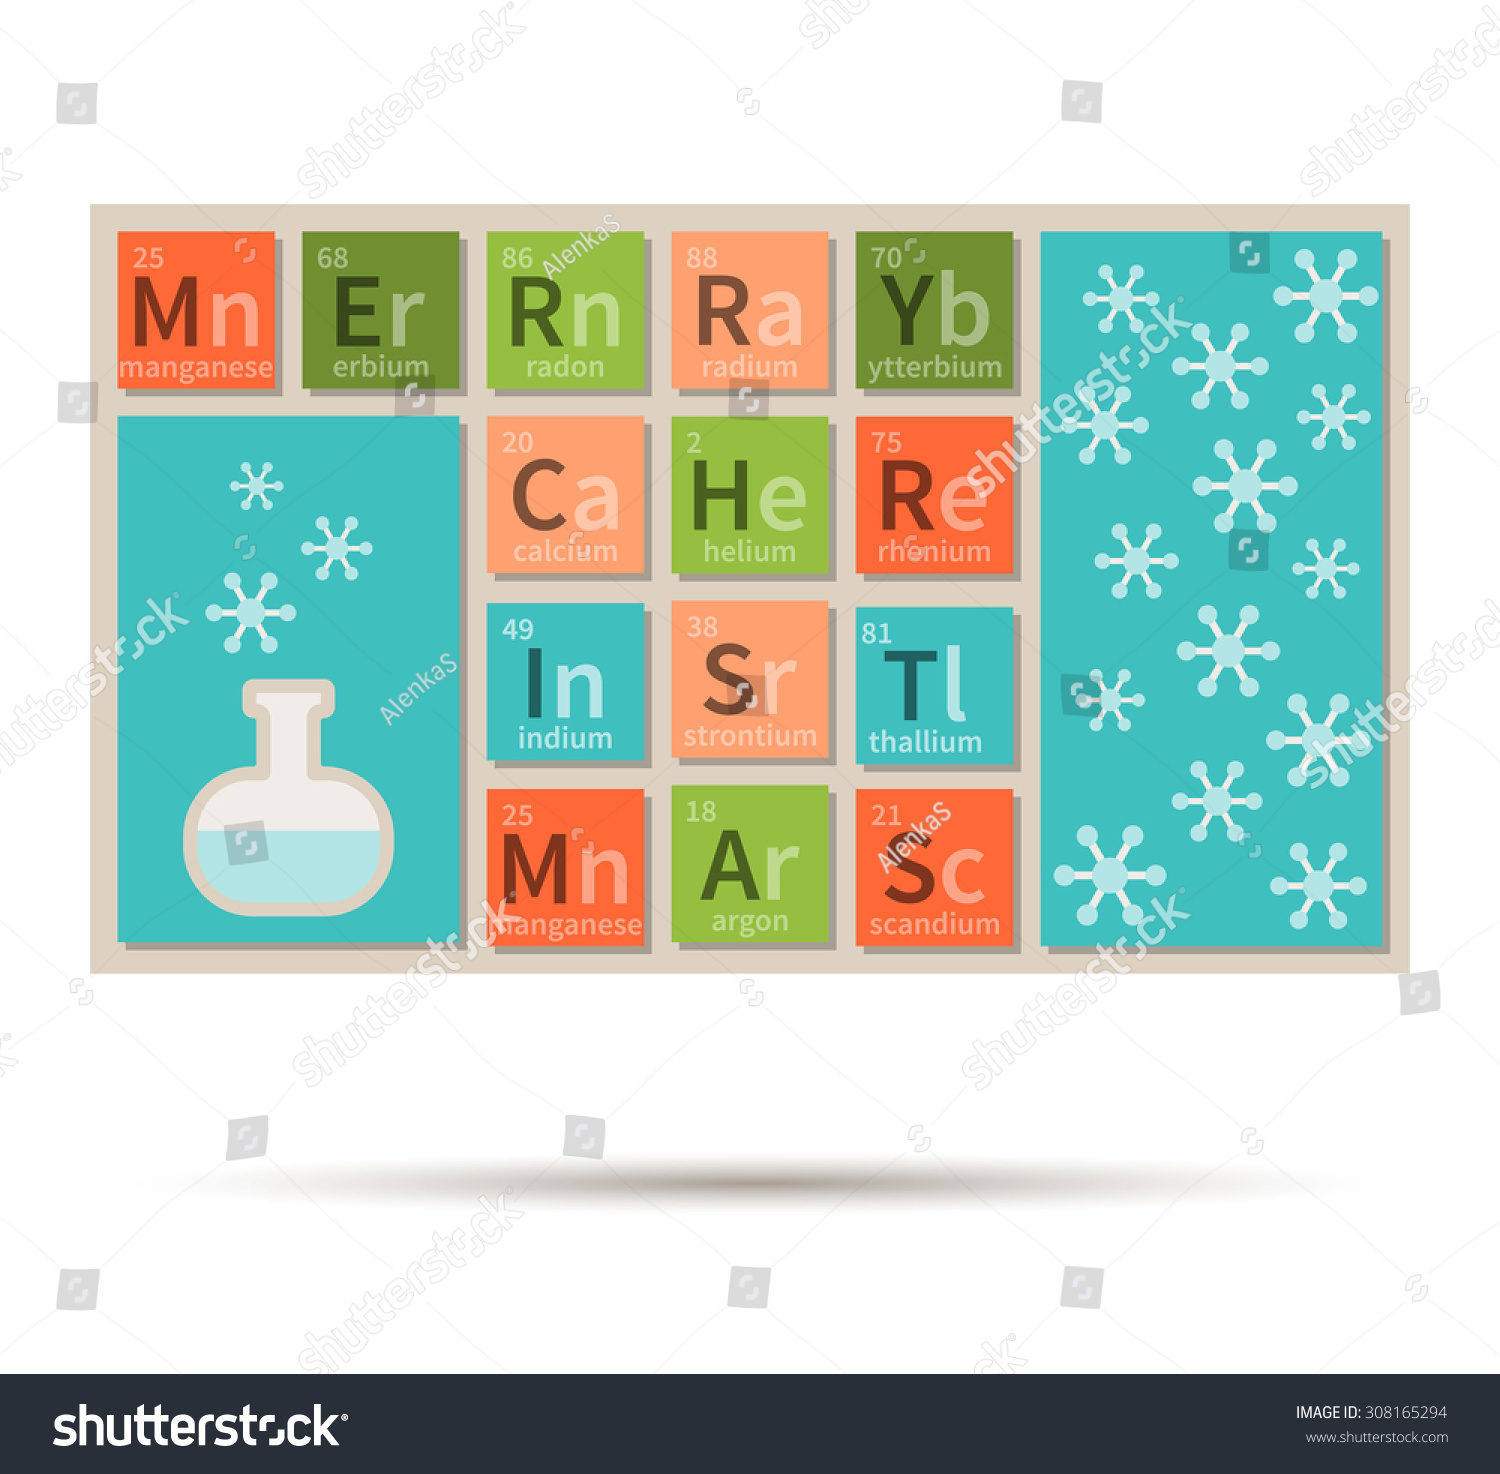 Merry christmas chemistry theme periodic table stock vector merry christmas chemistry theme with periodic table elements gamestrikefo Choice Image